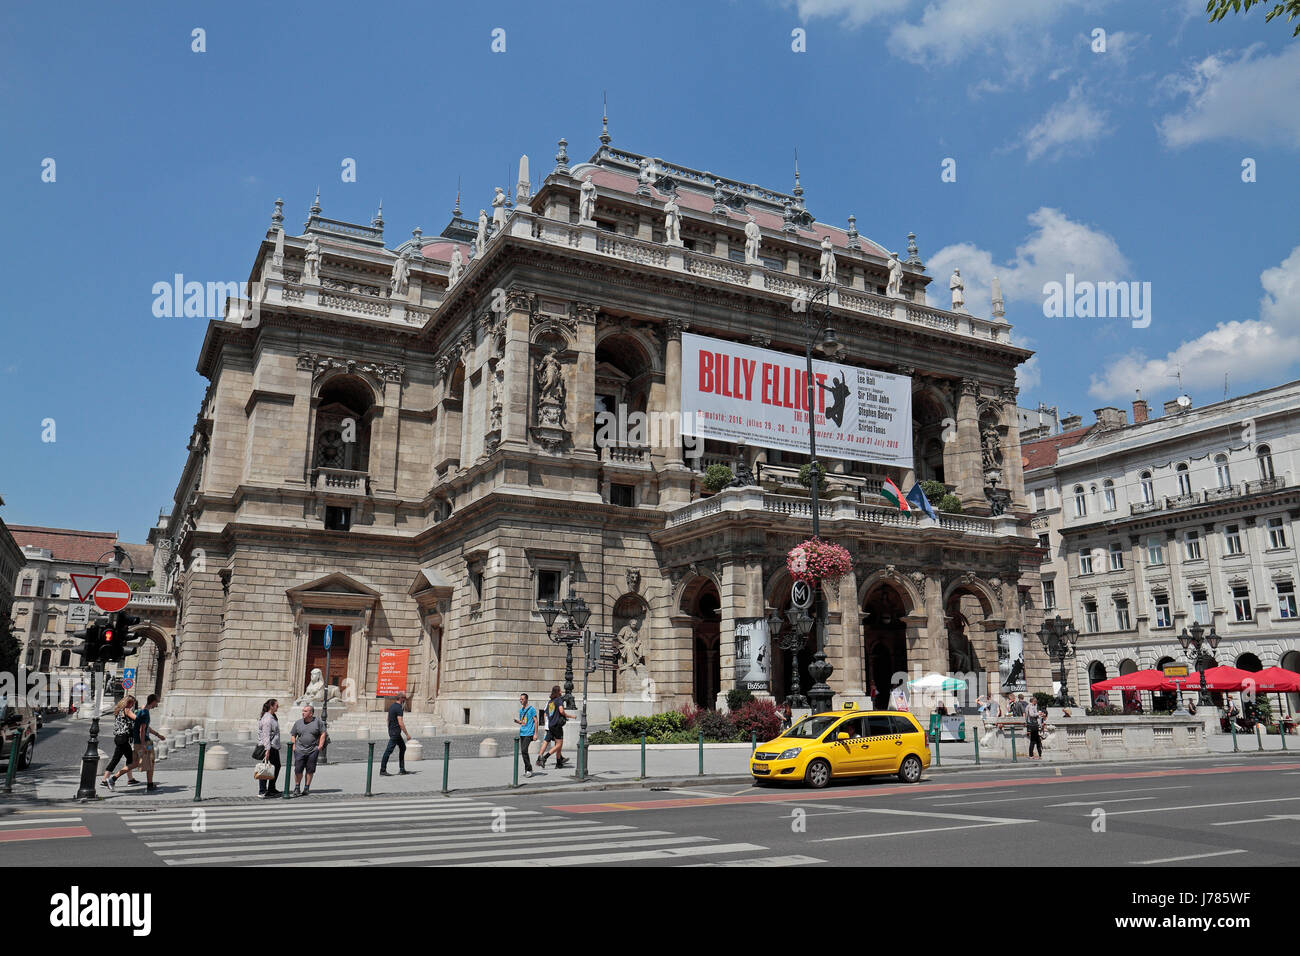 The Hungarian State Opera House (Magyar Allami Operahaz) in Budapest, Hungary. - Stock Image